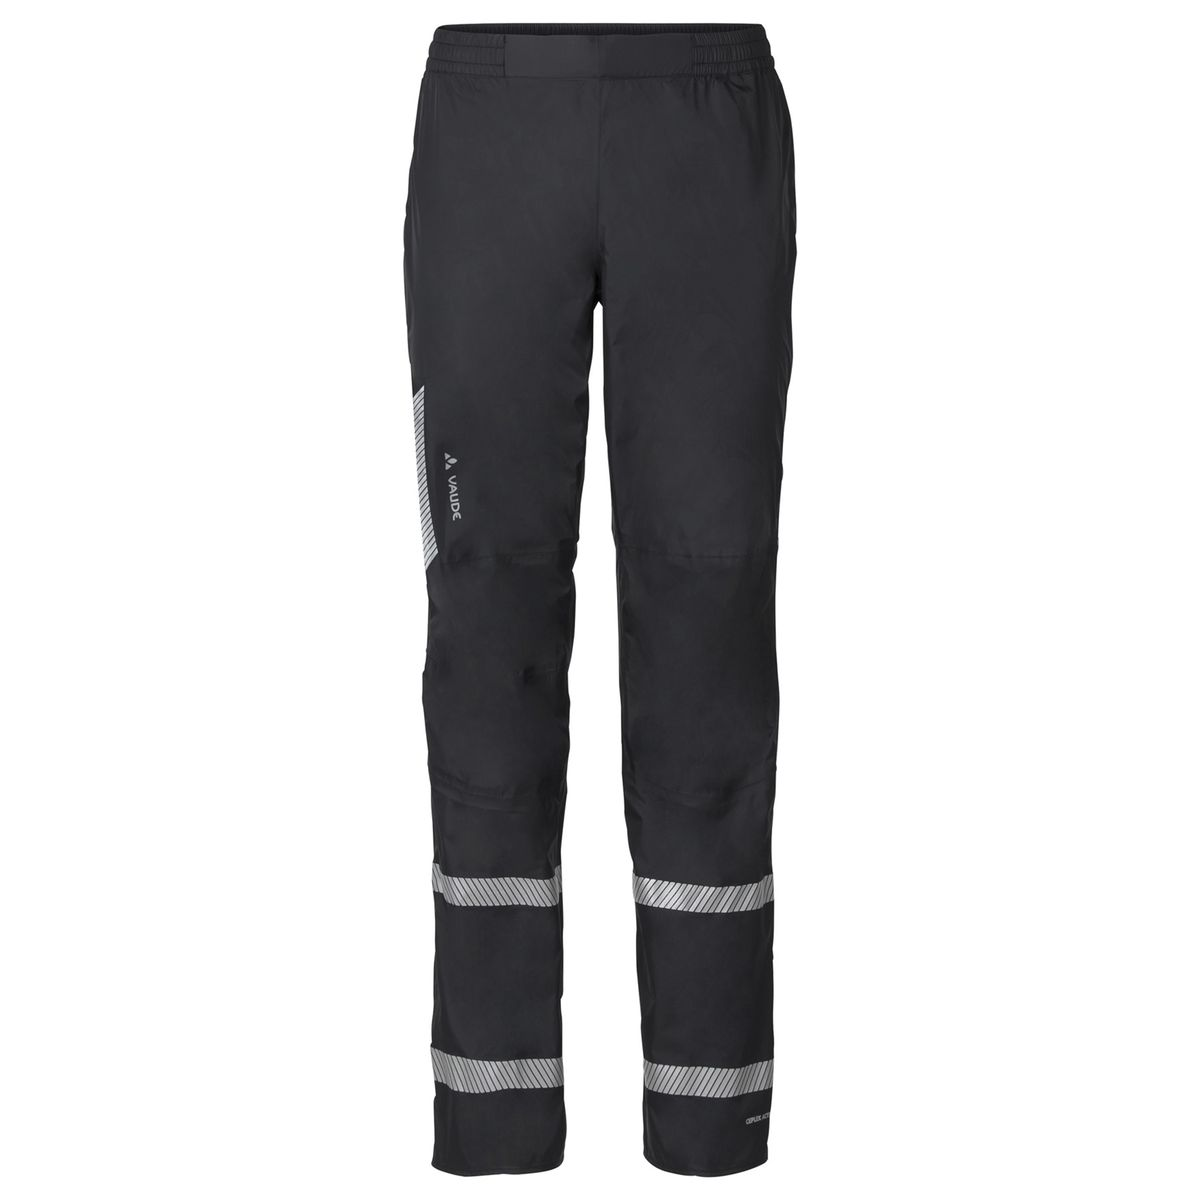 LUMINUM PERFORMANCE waterproof trousers for women